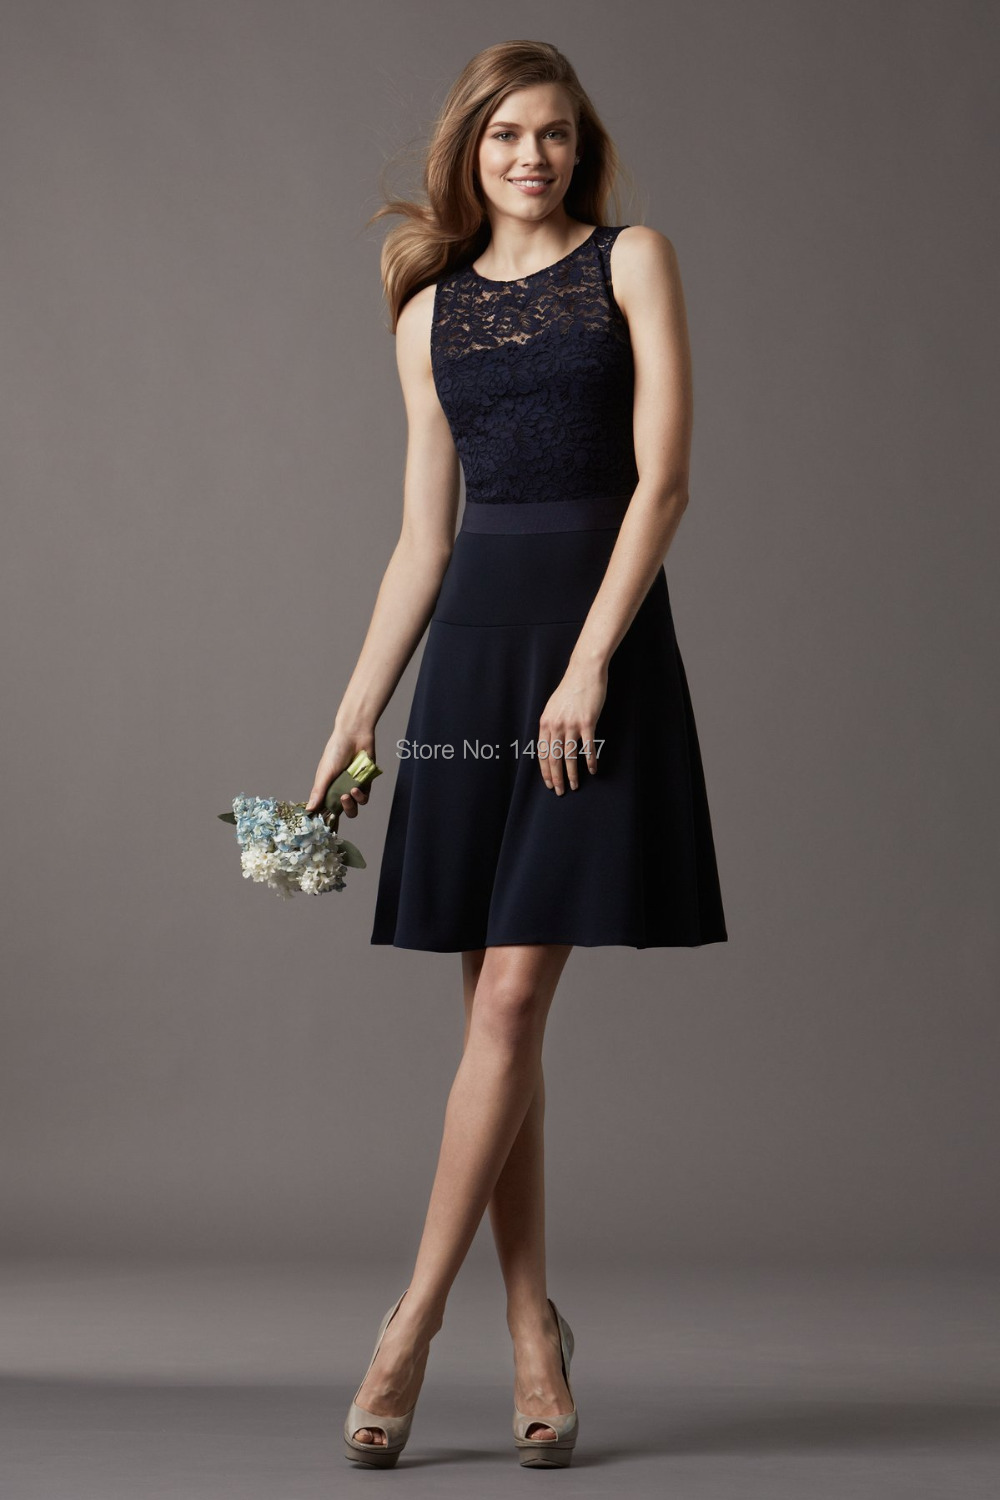 Popular fast shipping bridesmaid dresses buy cheap fast shipping fashionable vintage dark blue chiffon lace bridesmaid dresses a line short country style bridesmaid dresses cheap ombrellifo Image collections